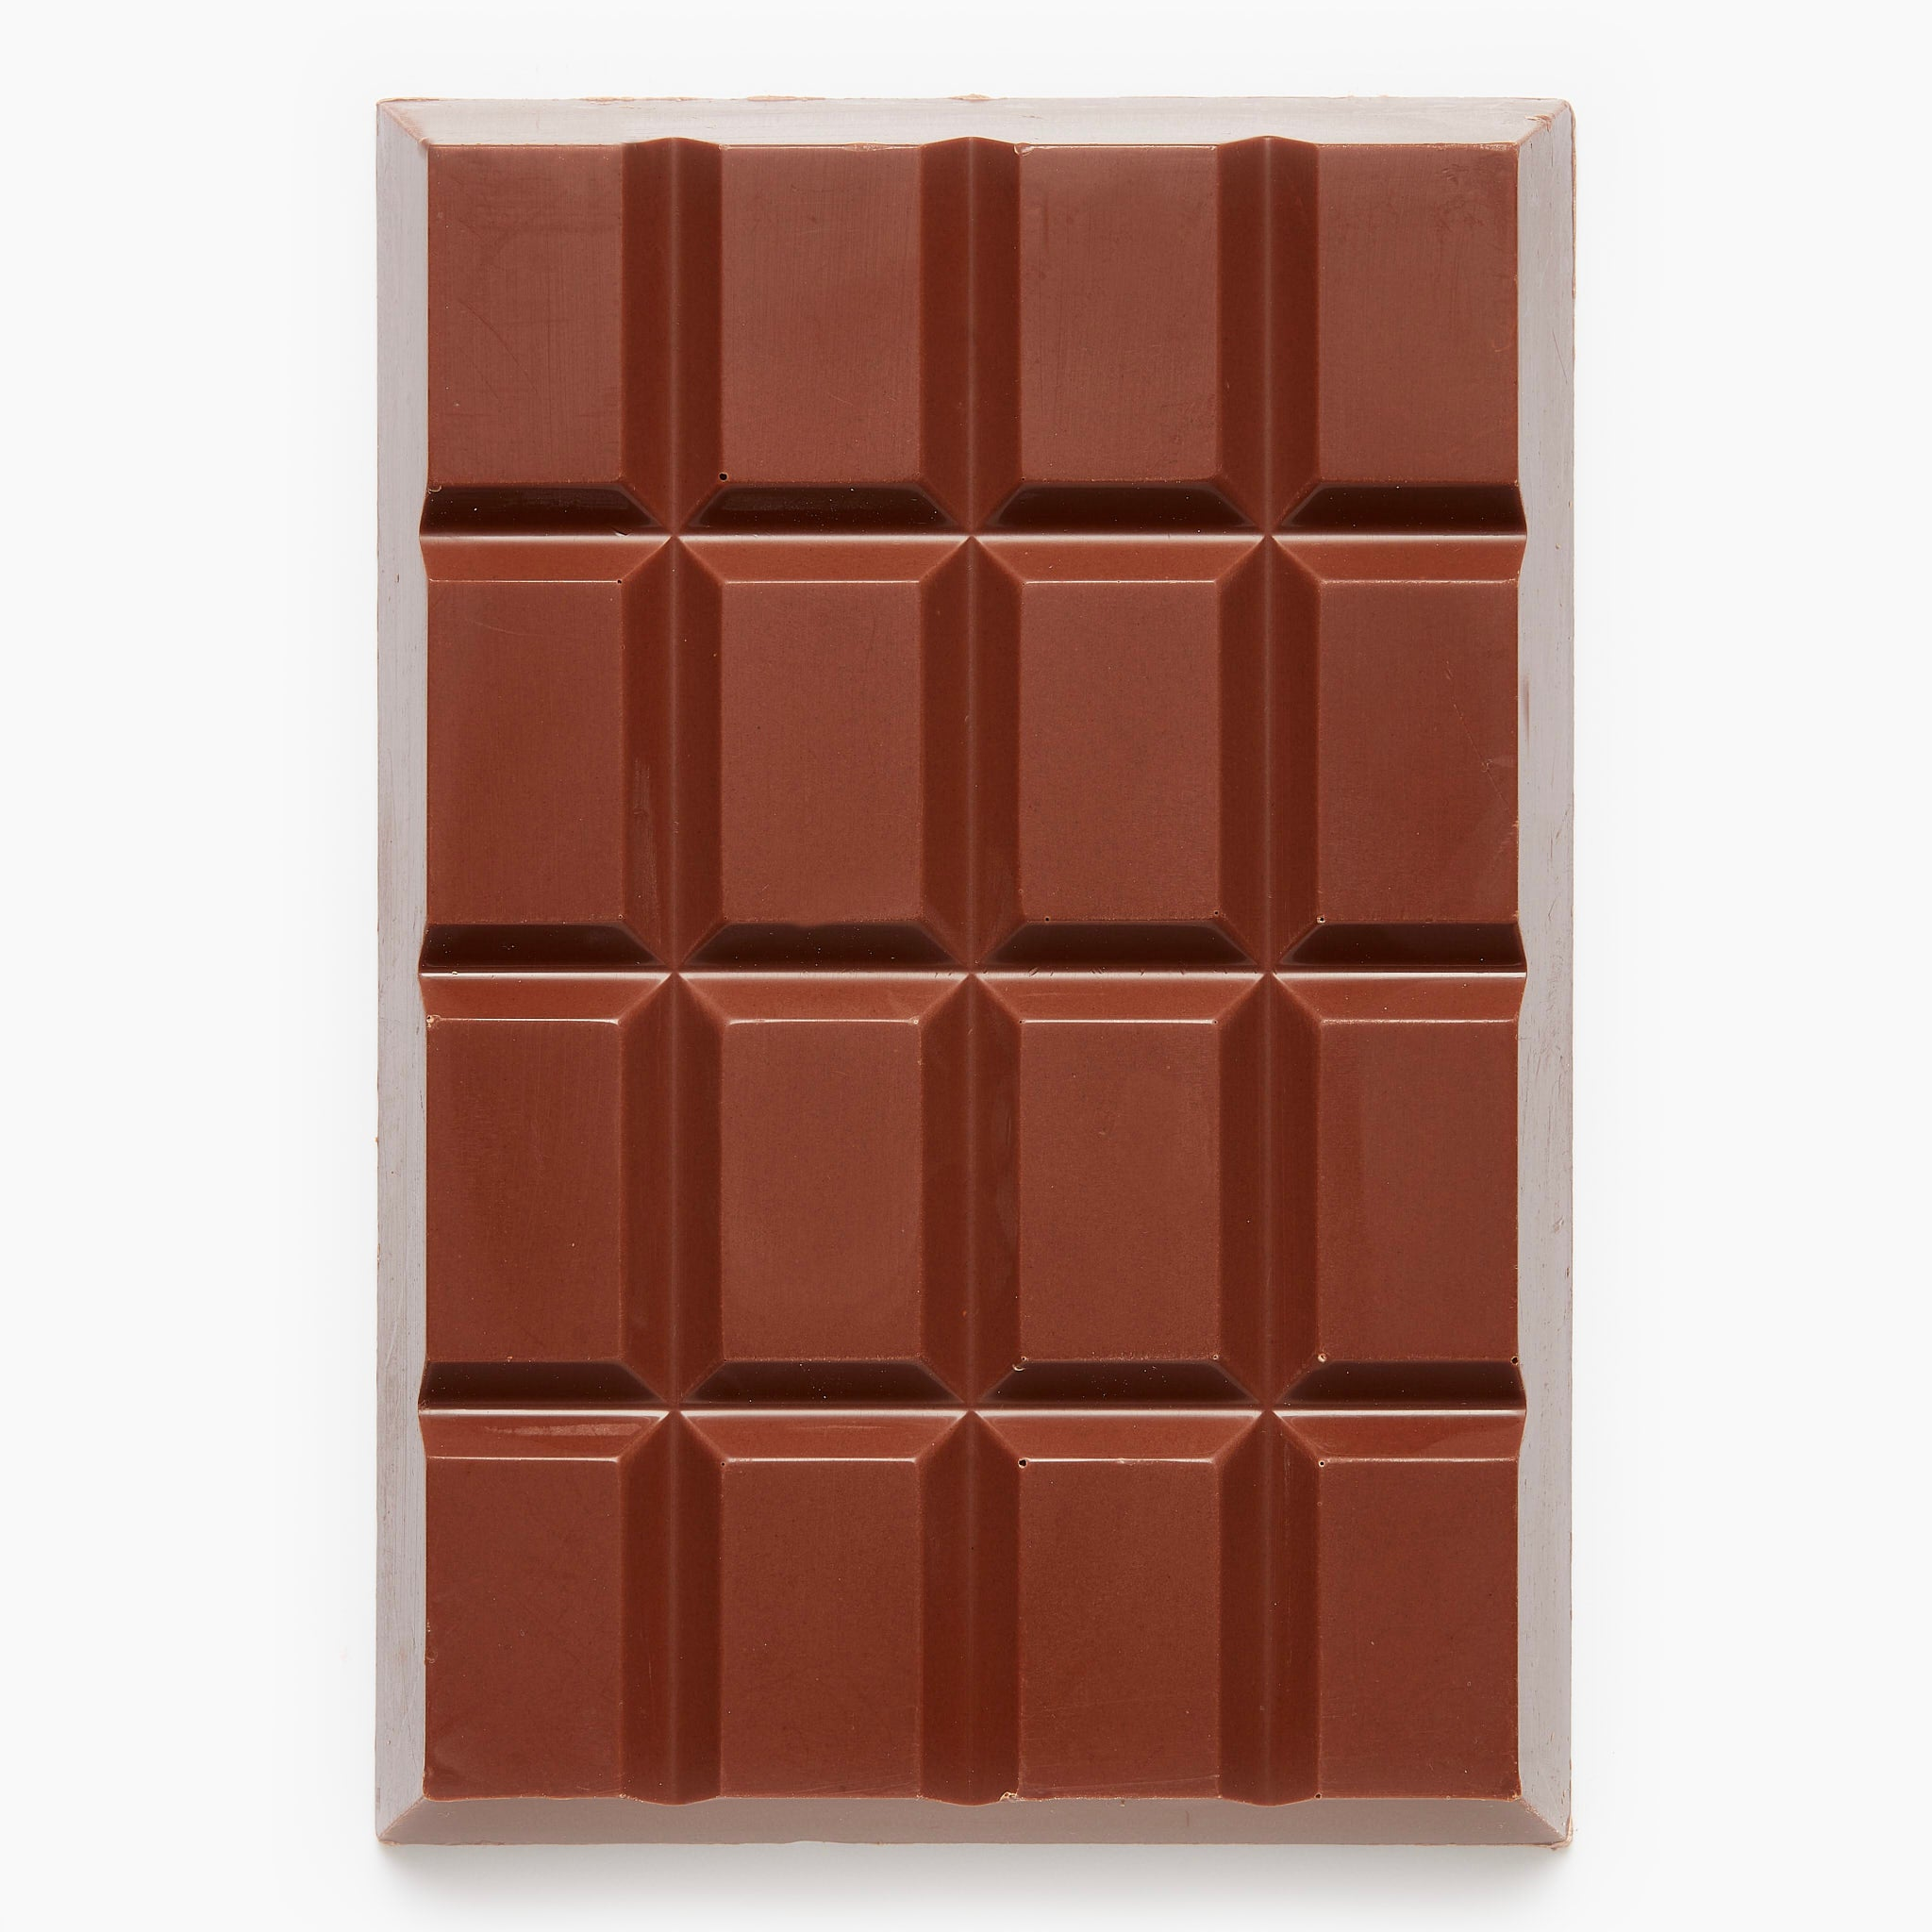 38% milk chocolate sharing bar (450g)